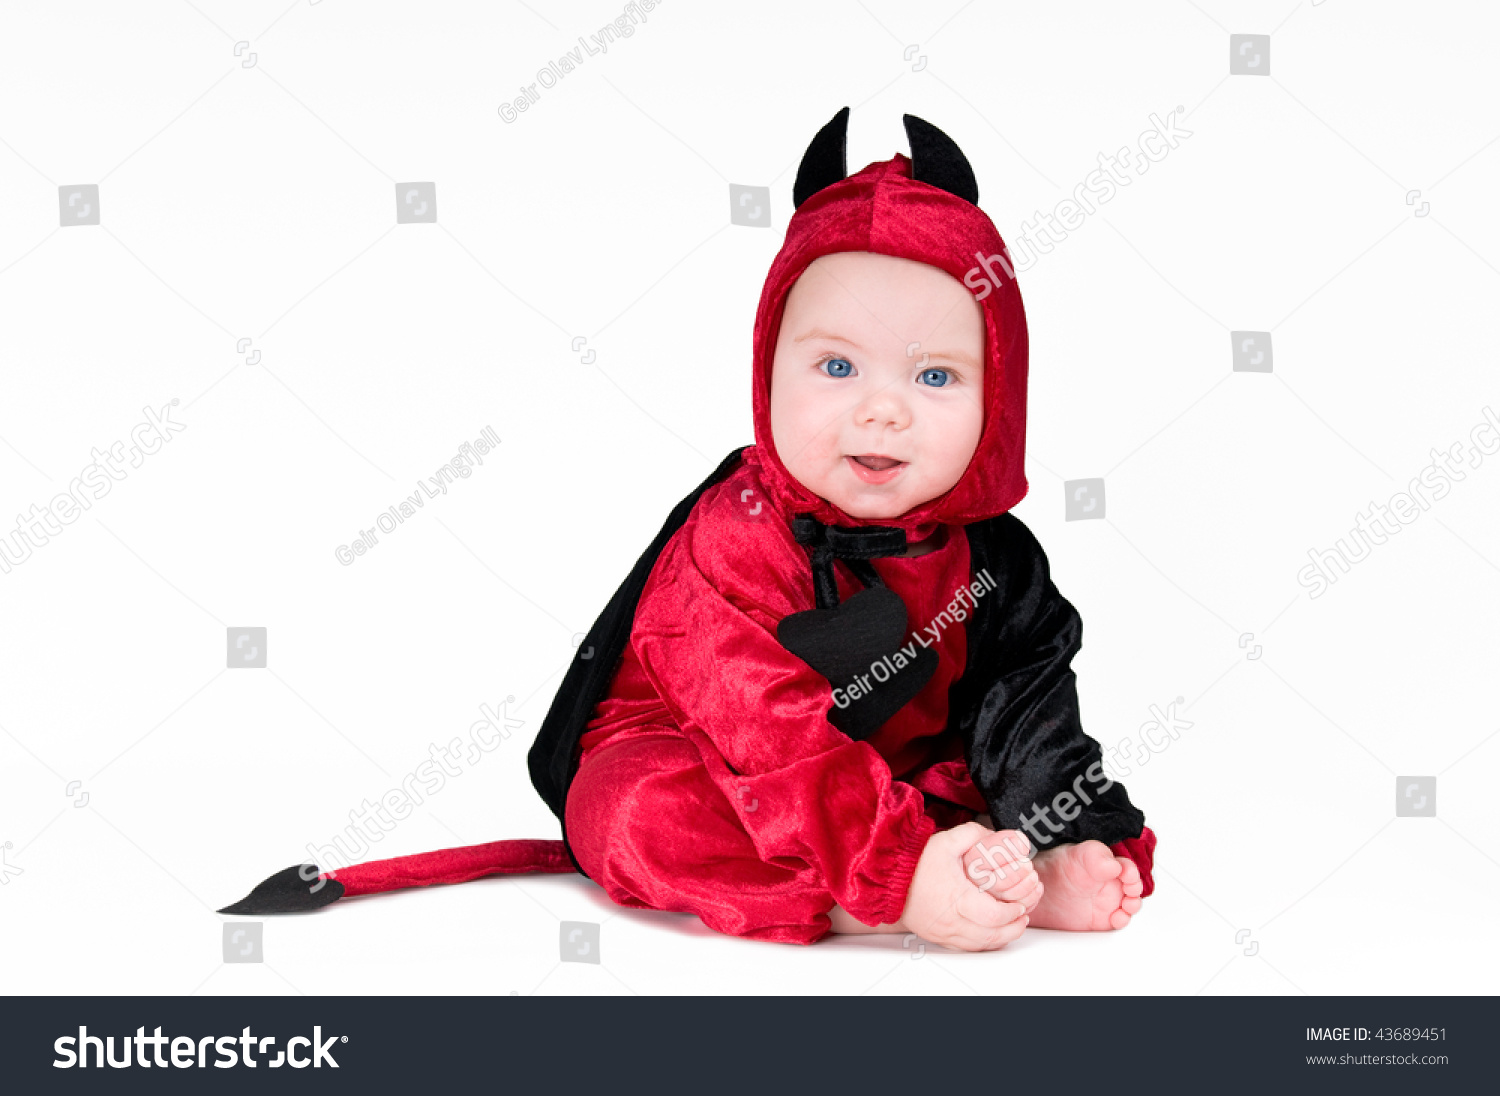 cute baby boy halloween outfit on stock photo (edit now) 43689451